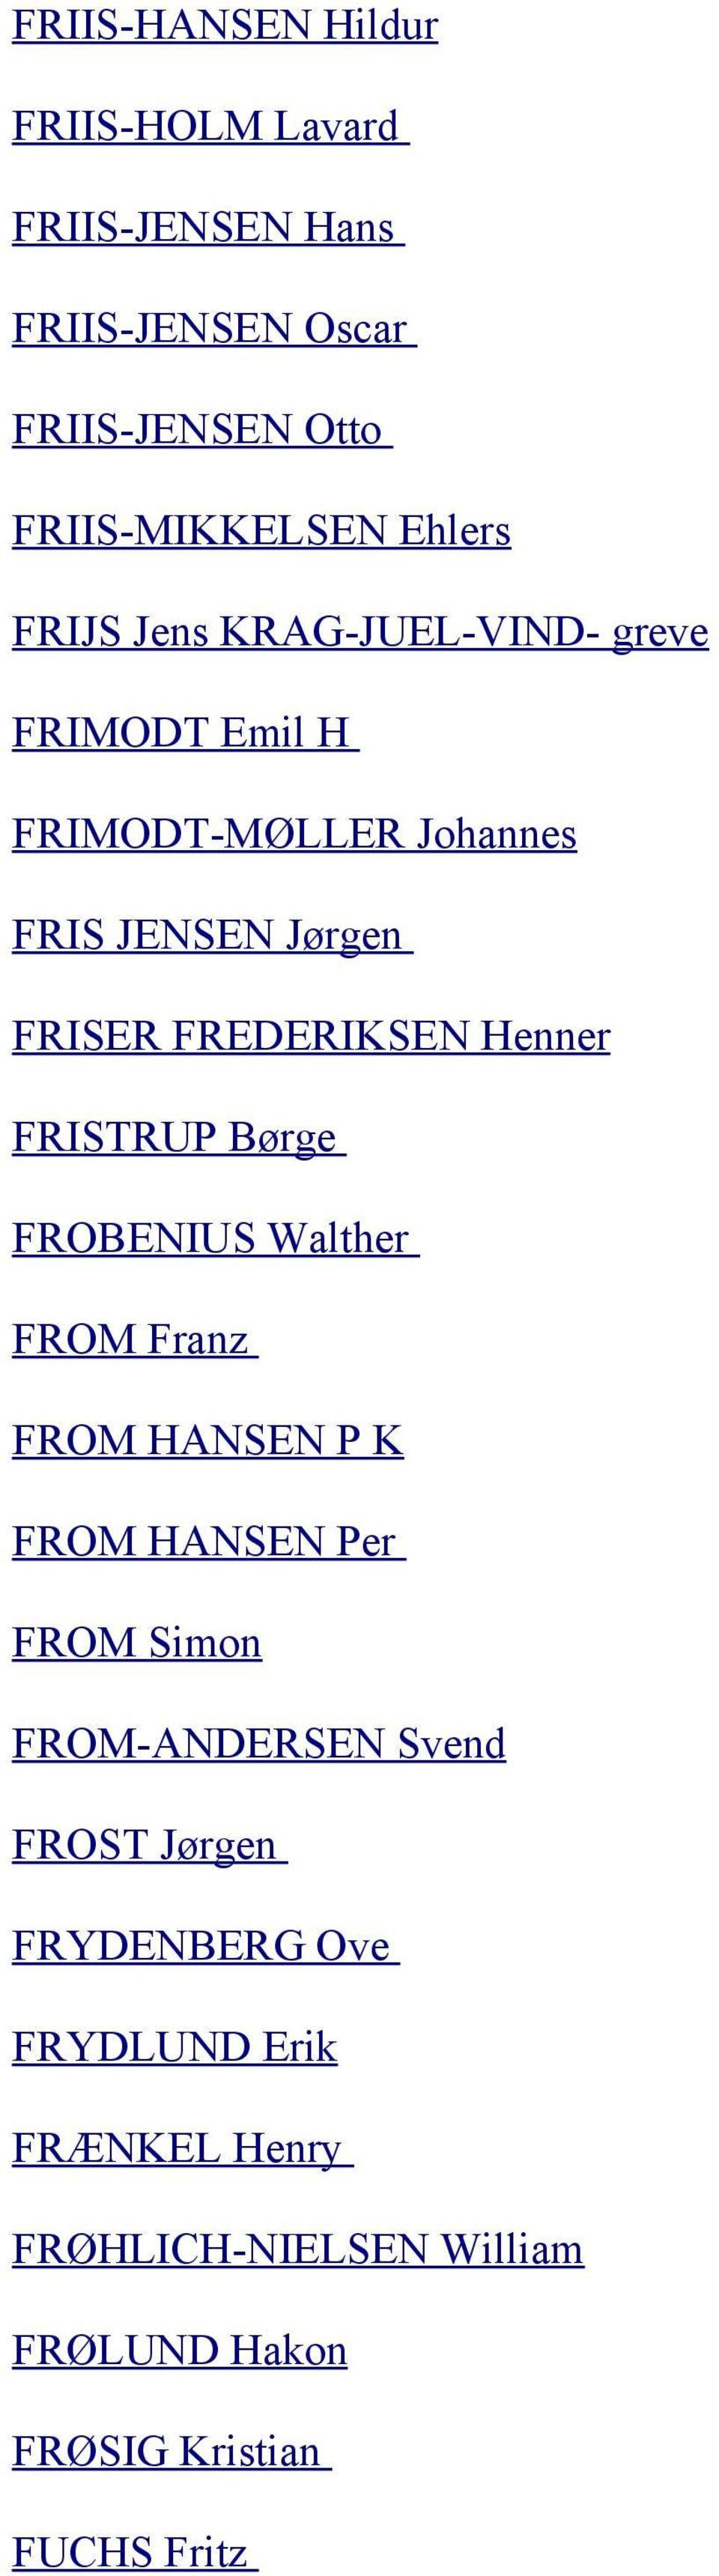 Henner FRISTRUP Børge FROBENIUS Walther FROM Franz FROM HANSEN P K FROM HANSEN Per FROM Simon FROM-ANDERSEN Svend